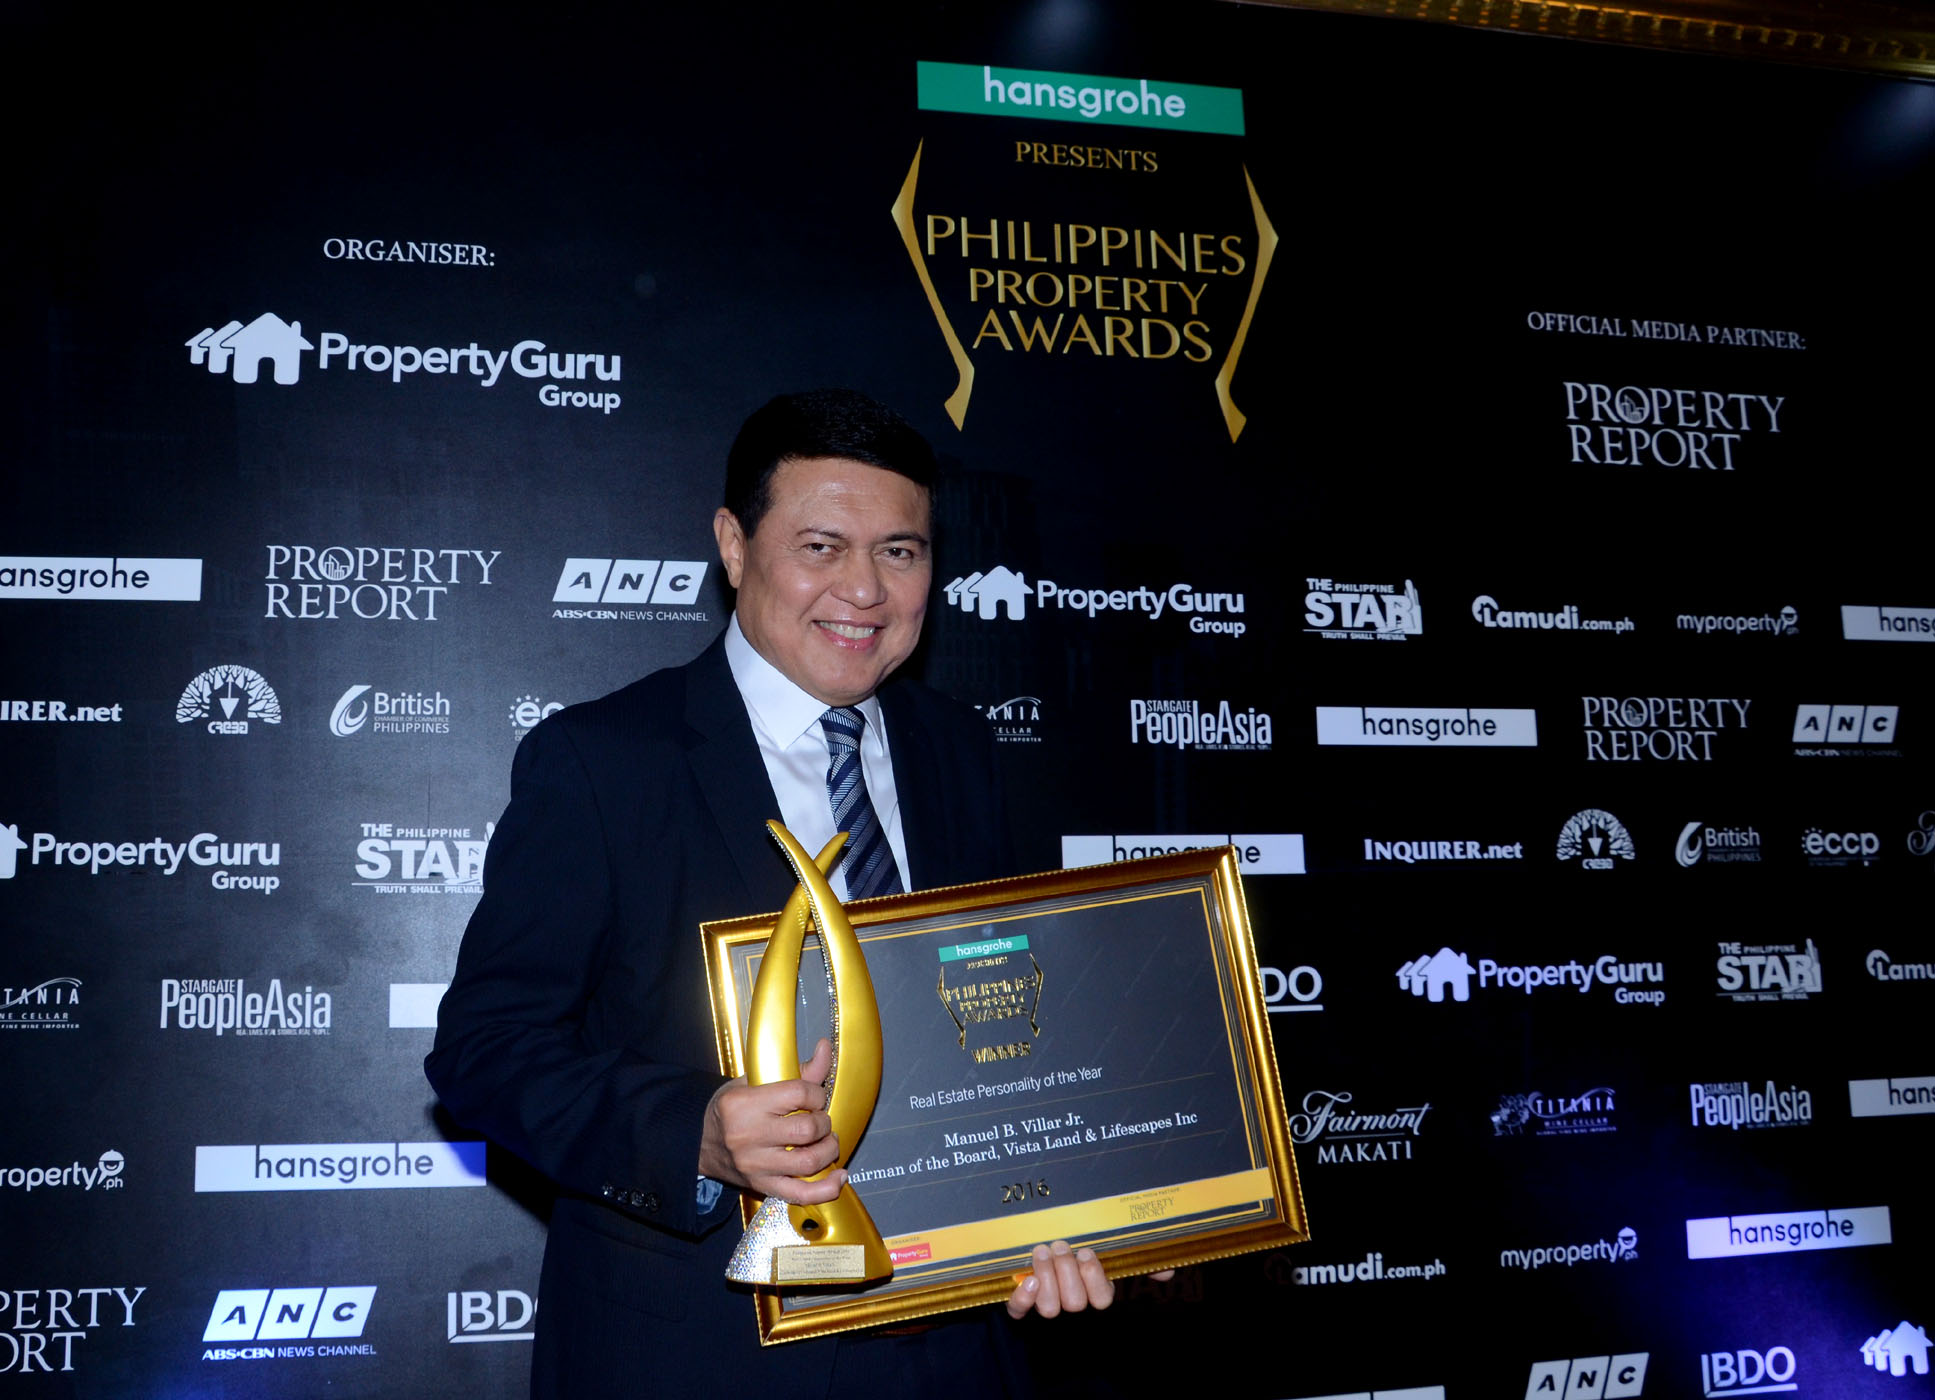 PHILIPPINES PROPERTY AWARDS Real Estate Personality of the Year 2